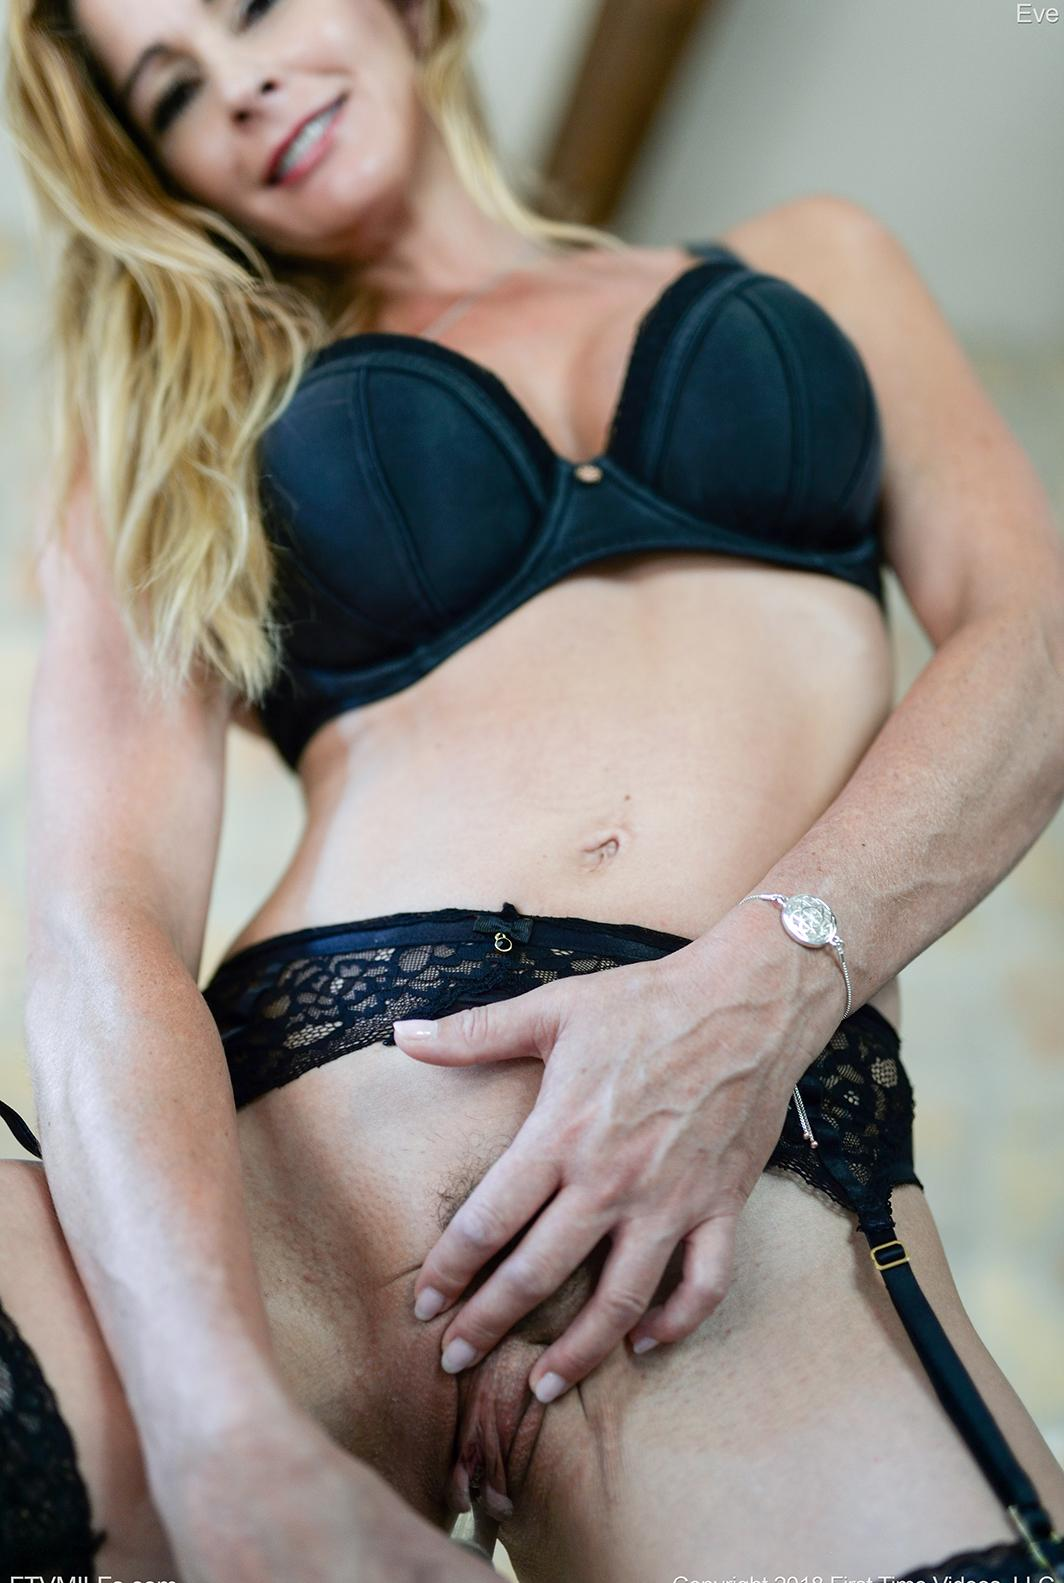 kinky french mom puts something dirty between her legs picture 9